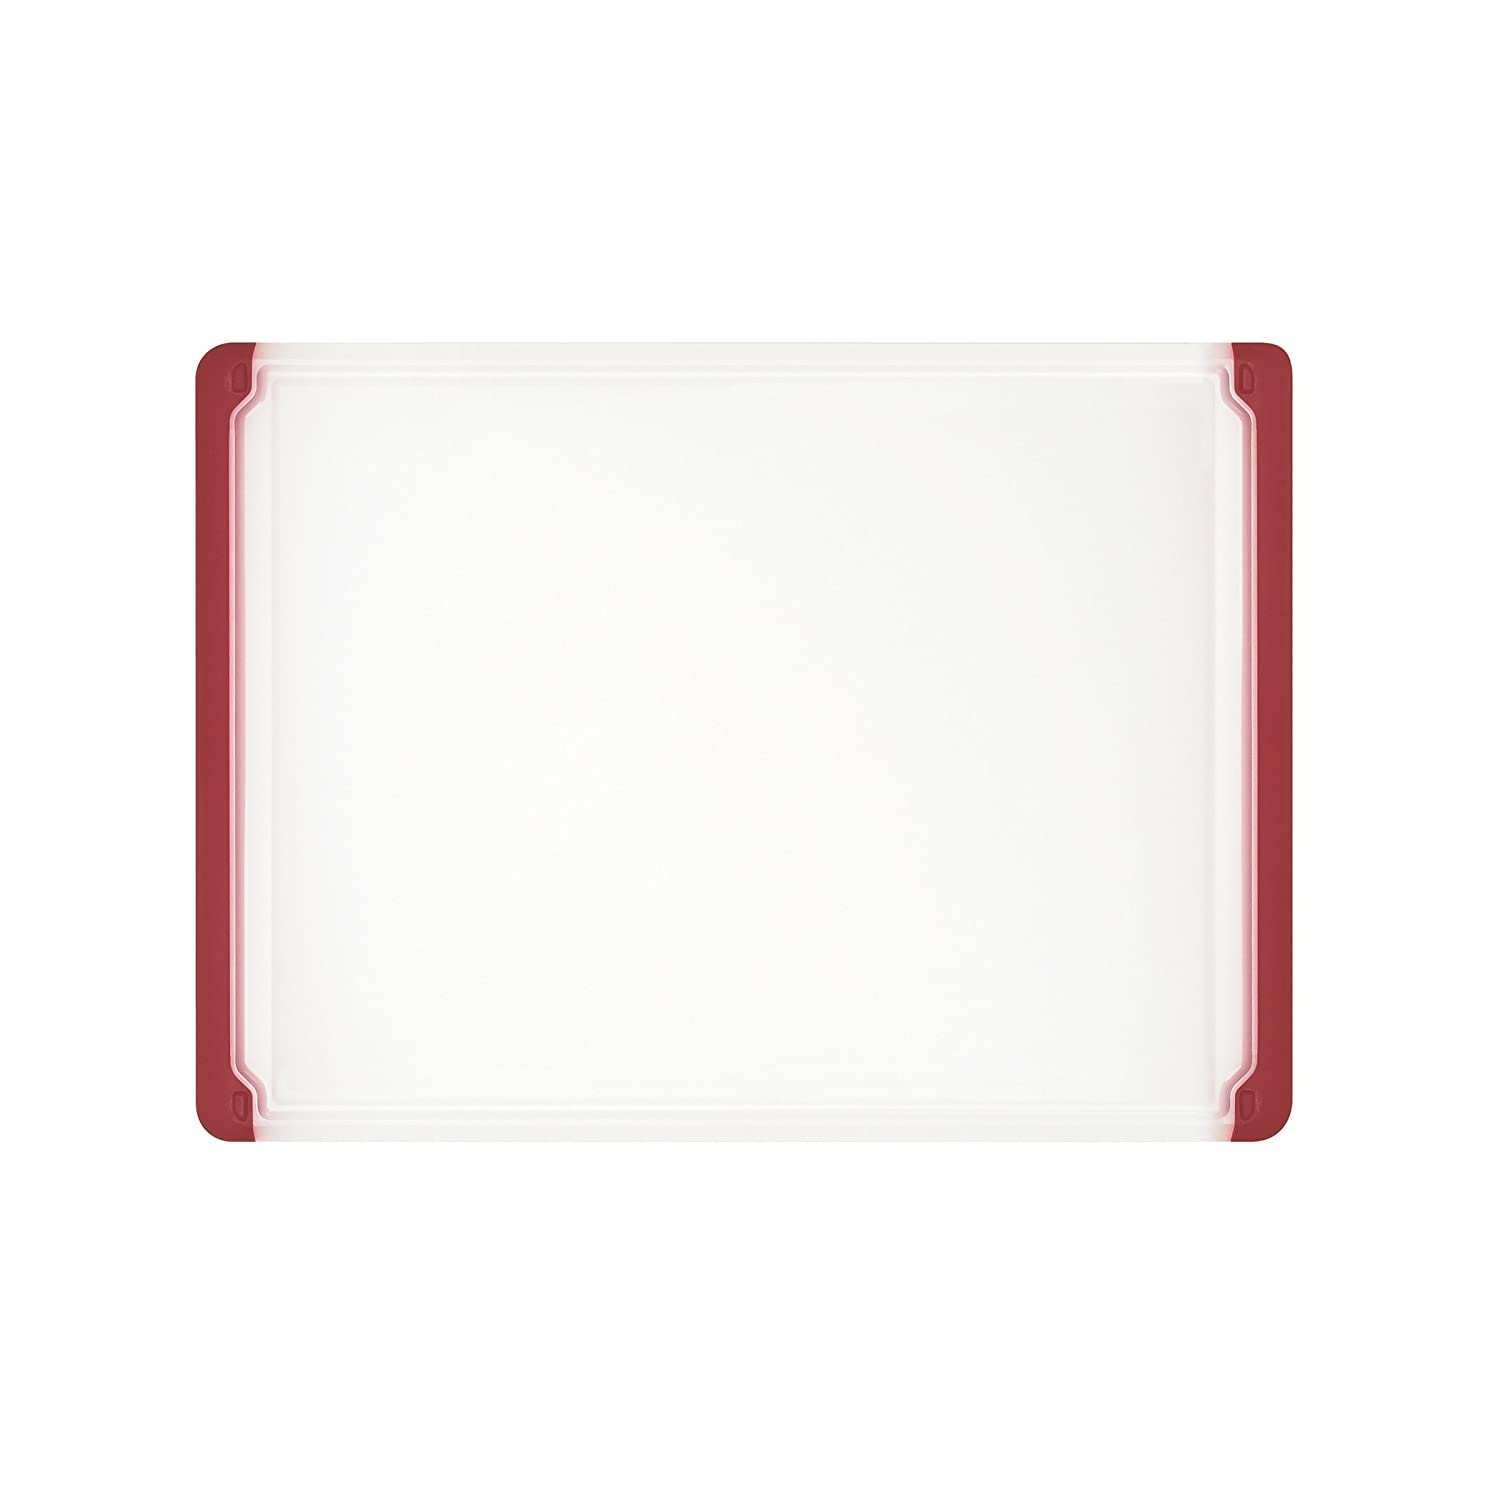 OXO Good Grips 10-1/2 x 14.5 Cutting Board